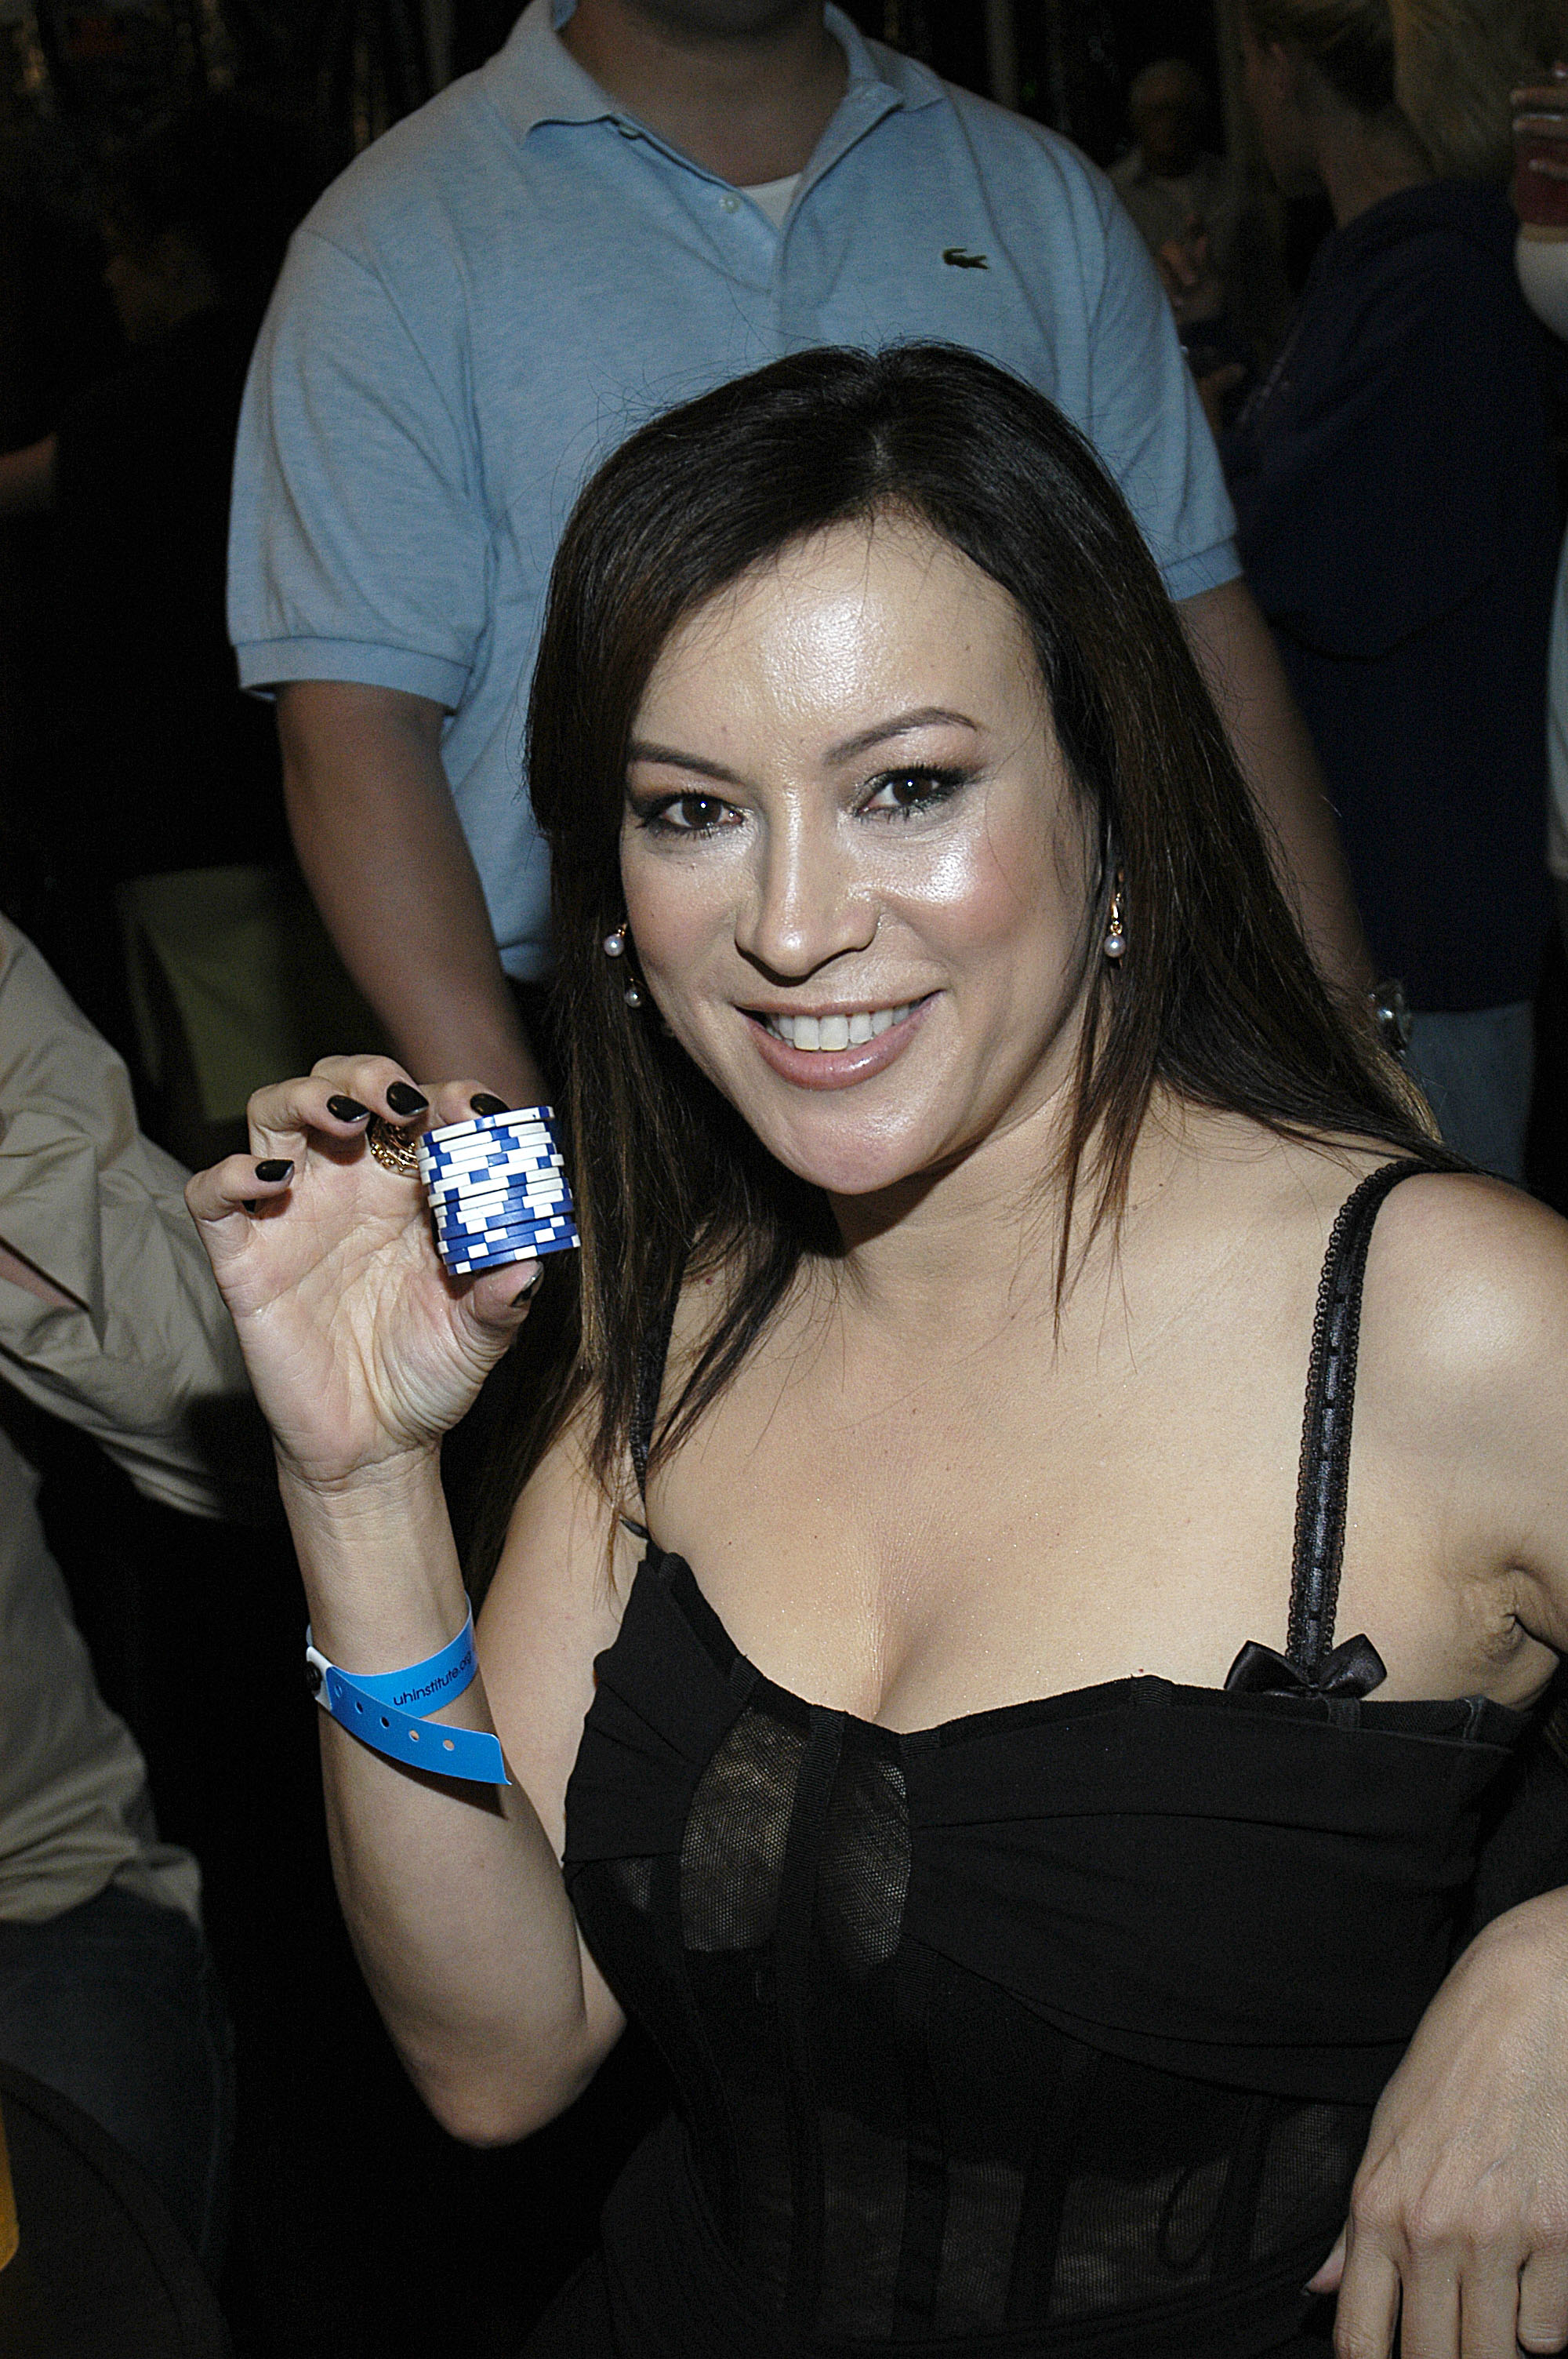 Jennifer Tilly   All the action from the casino floor: news, views and more